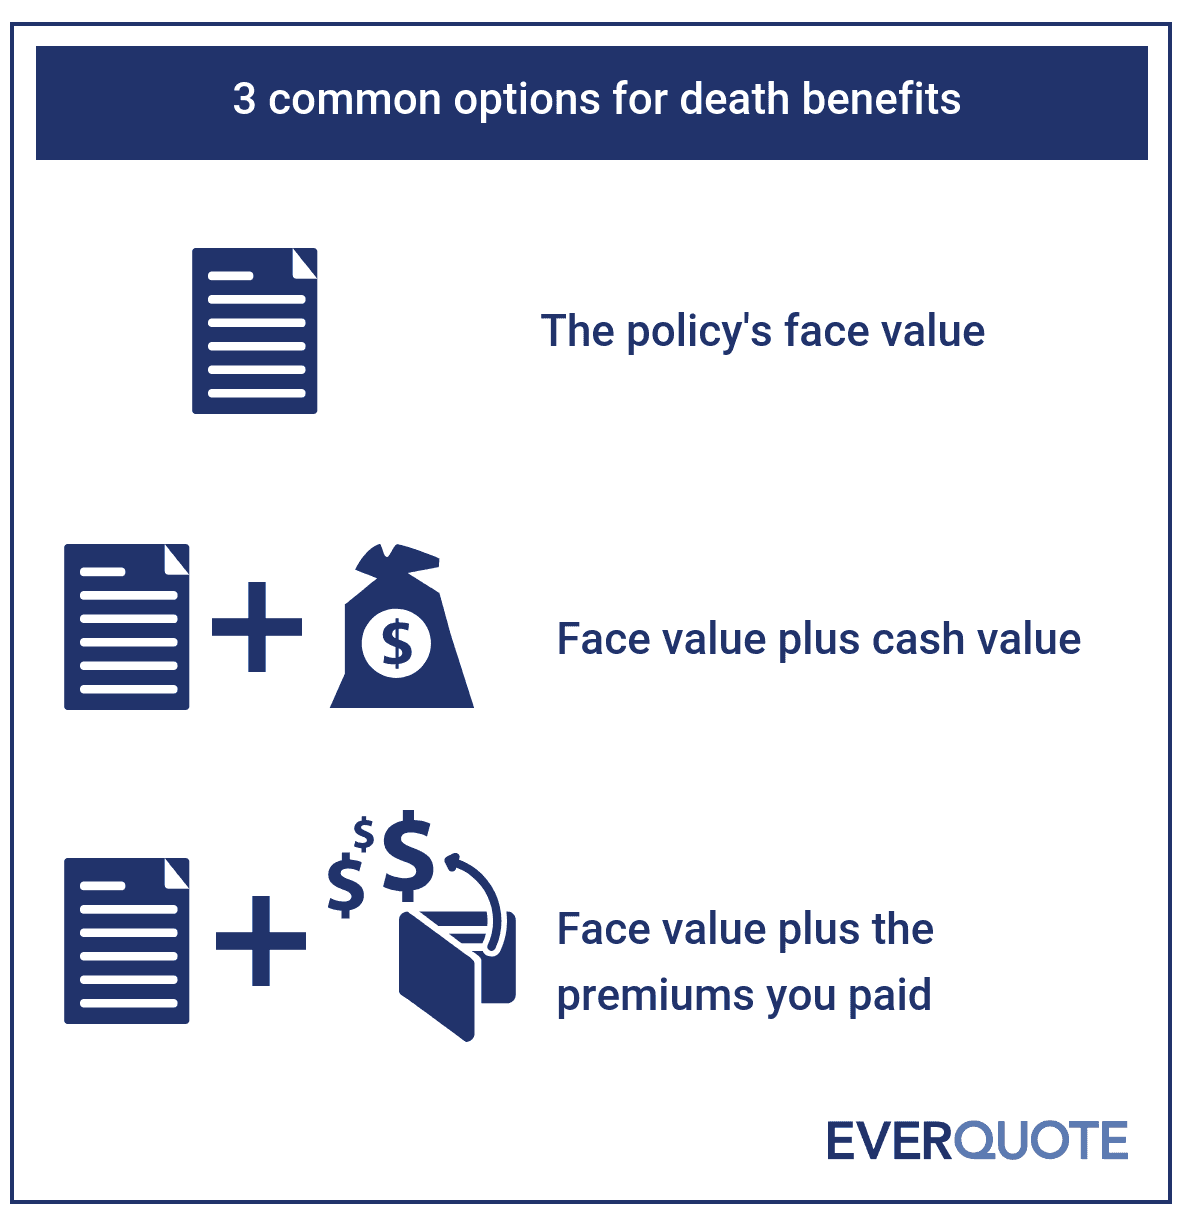 Cash value and death benefit options for life insurance